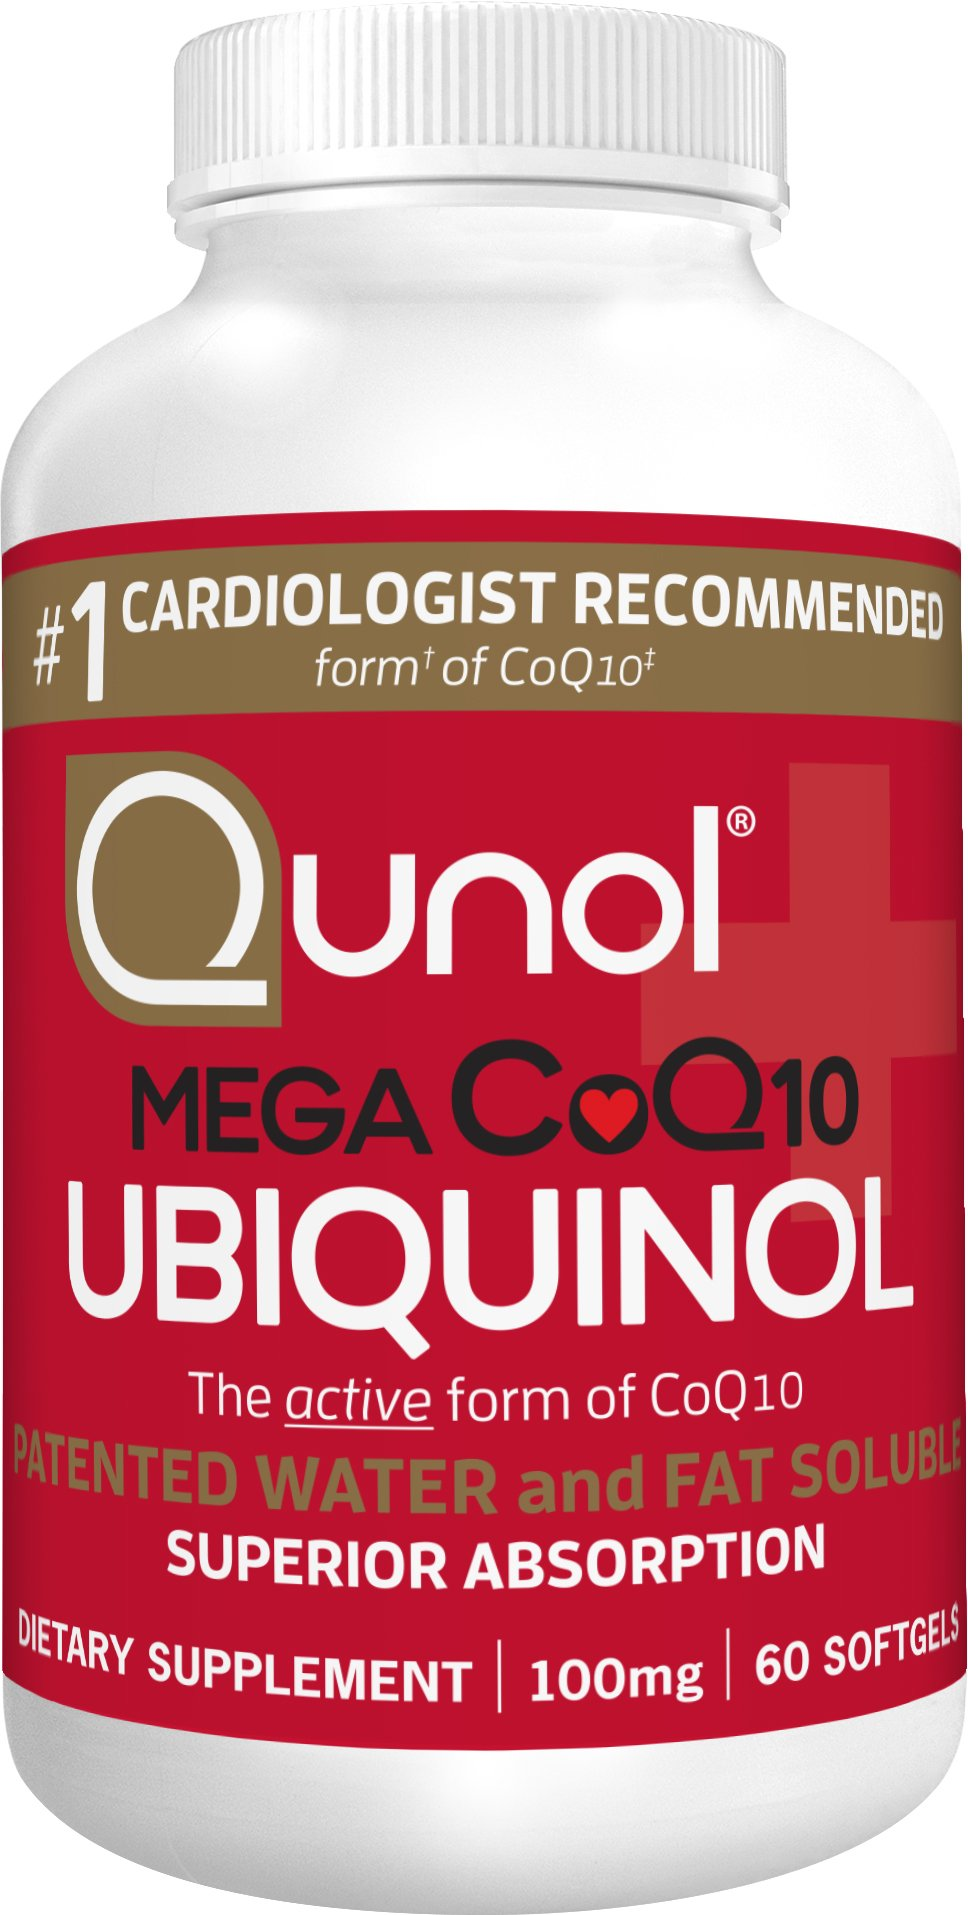 Qunol Mega 100mg CoQ10 Ubiquinol, Superior Absorption, Patented Water and Fat Soluble Natural Supplement Form of C0Q10, Antioxidant for Heart Health, 60 Count Softgels